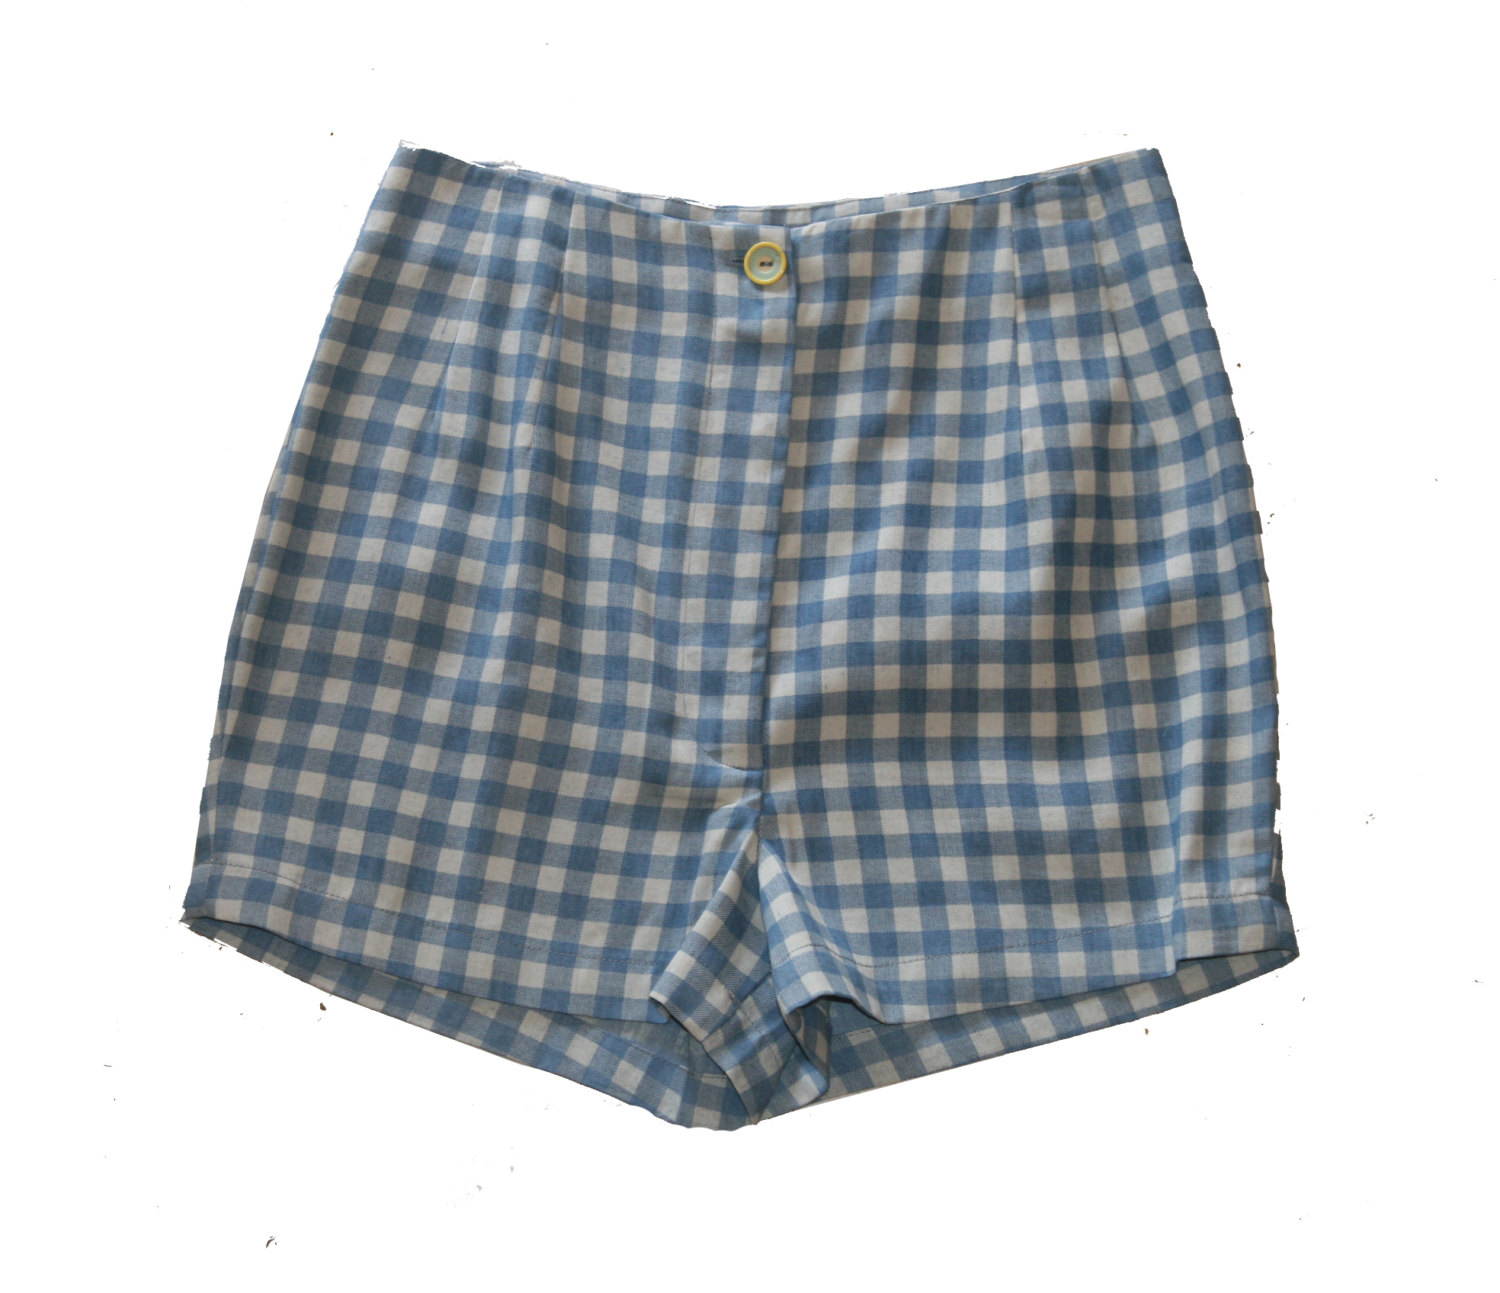 HIGH WAISTED women Shorts, Plaid Shorts ,Blue and white Check ...